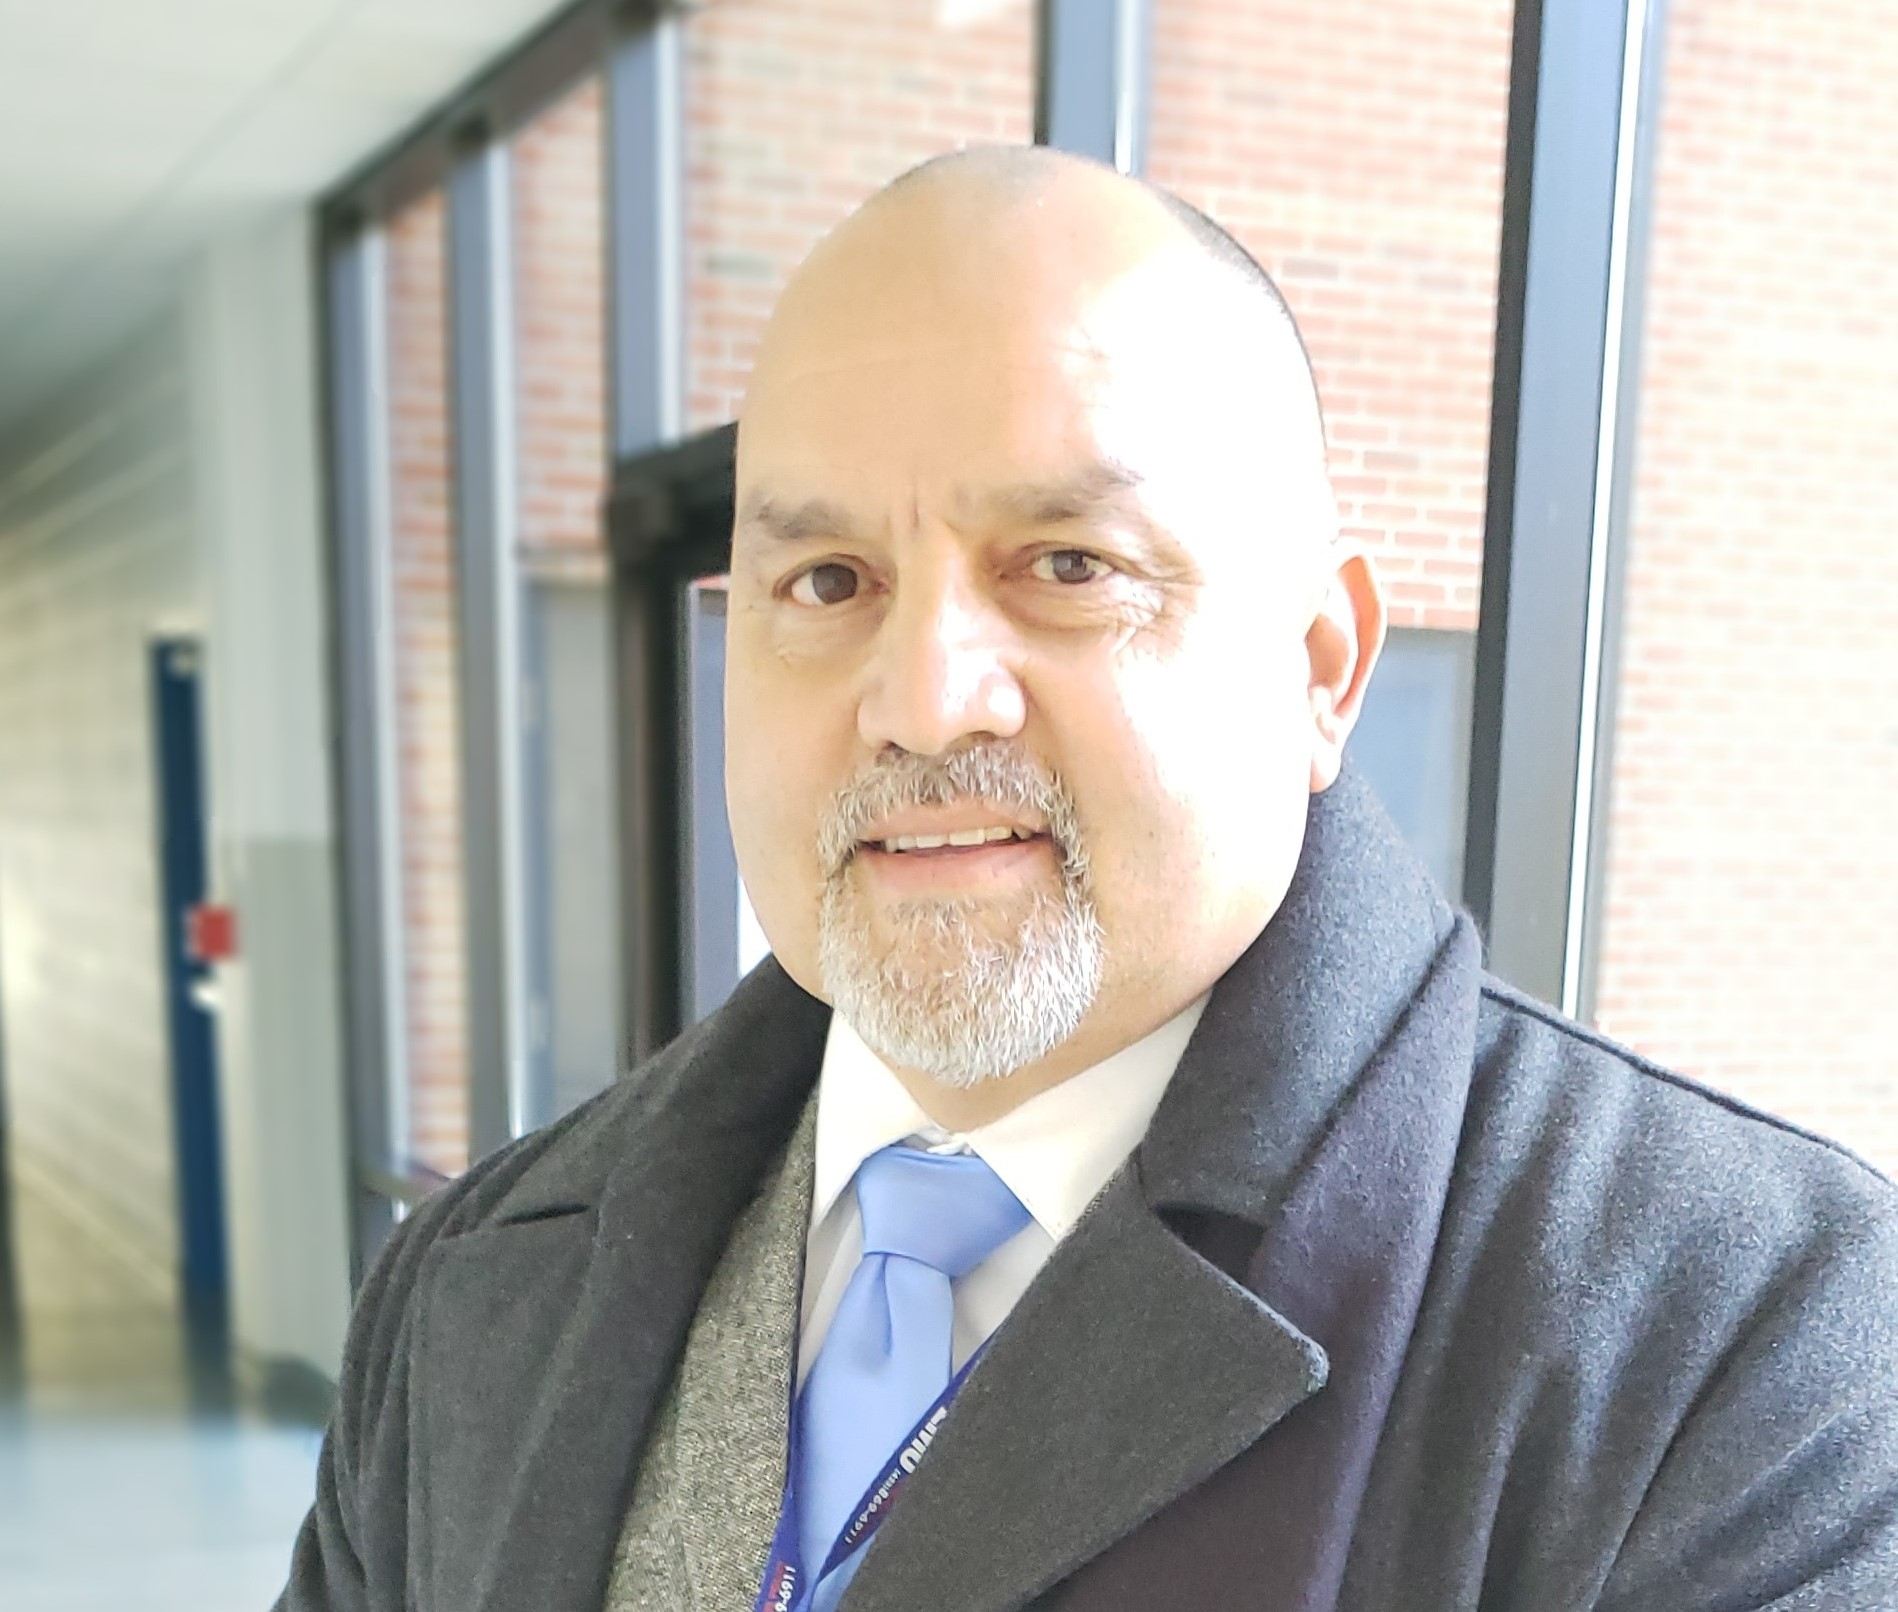 Spotlight on Campus Safety Director of the Year Finalist Cesar Gracia